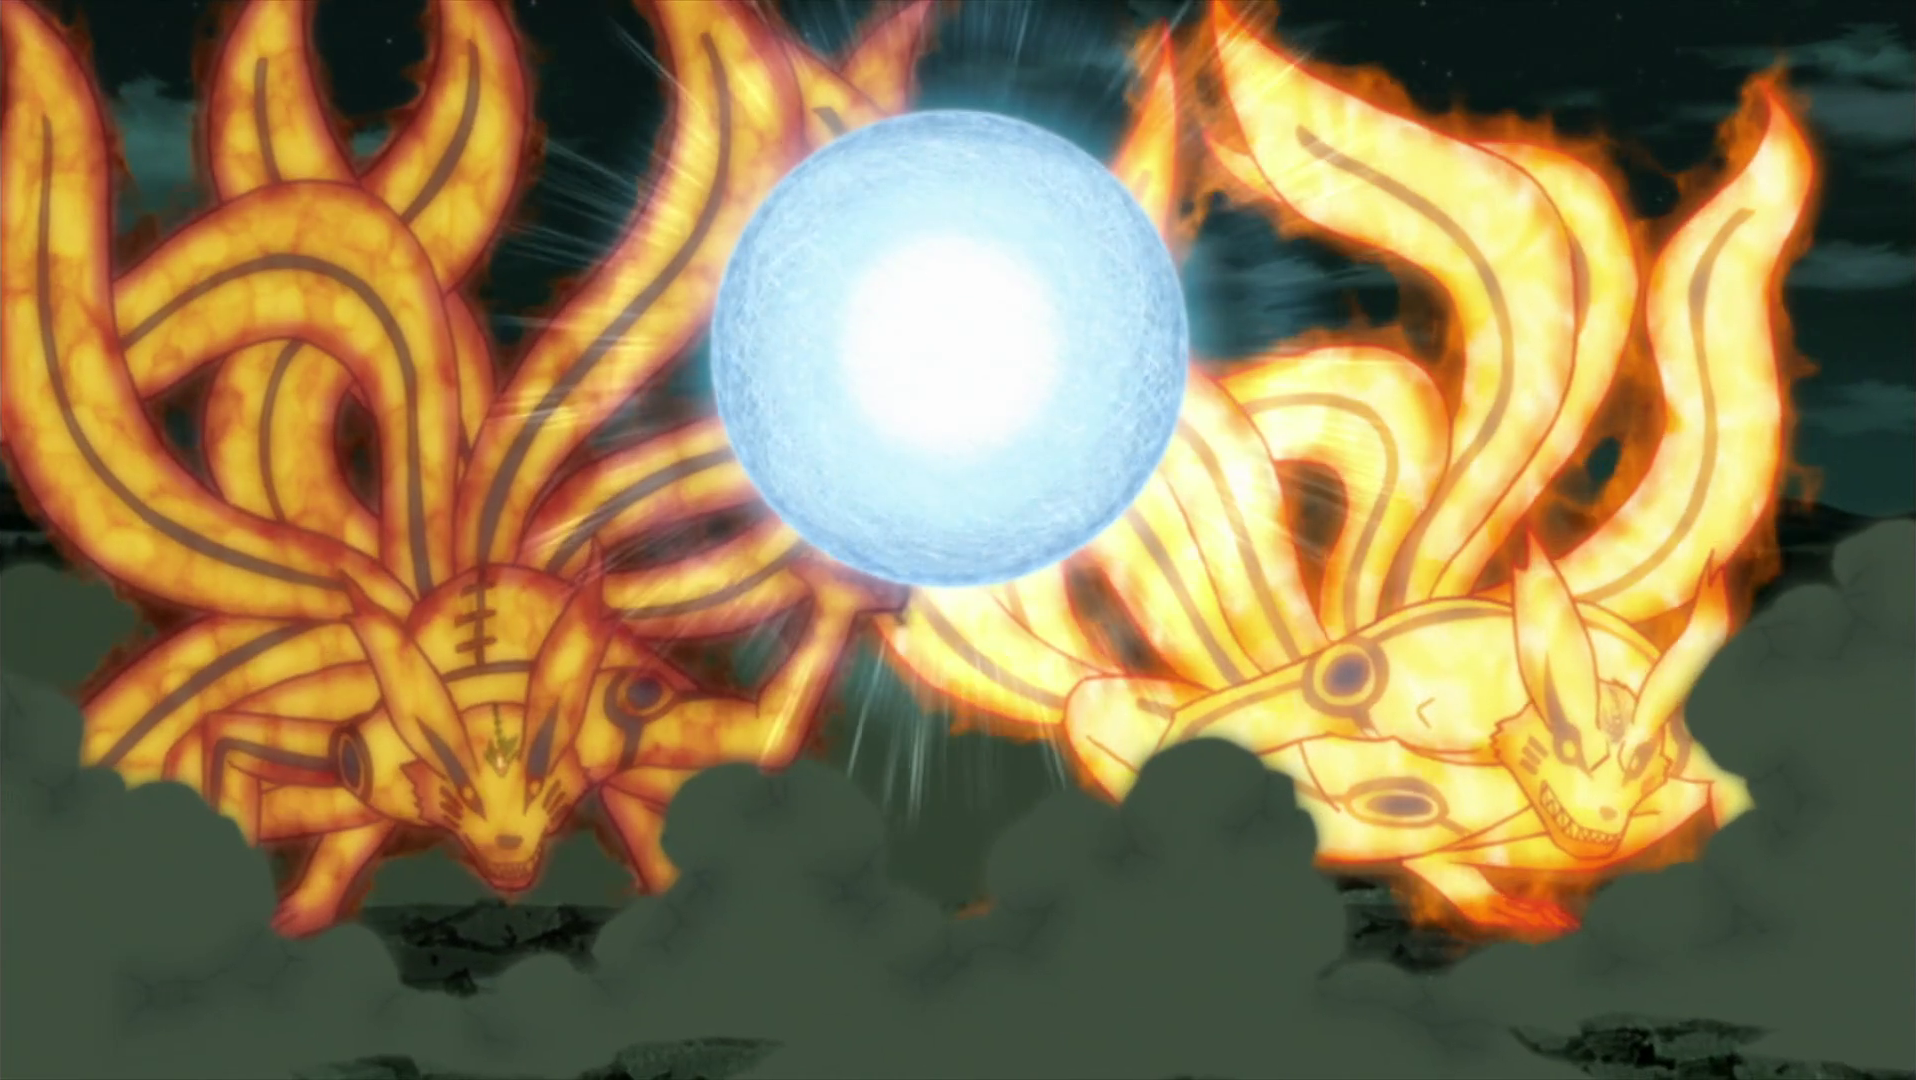 Naruto And Minato Ined Beast Mode With The Former Using Sage Mode As Well